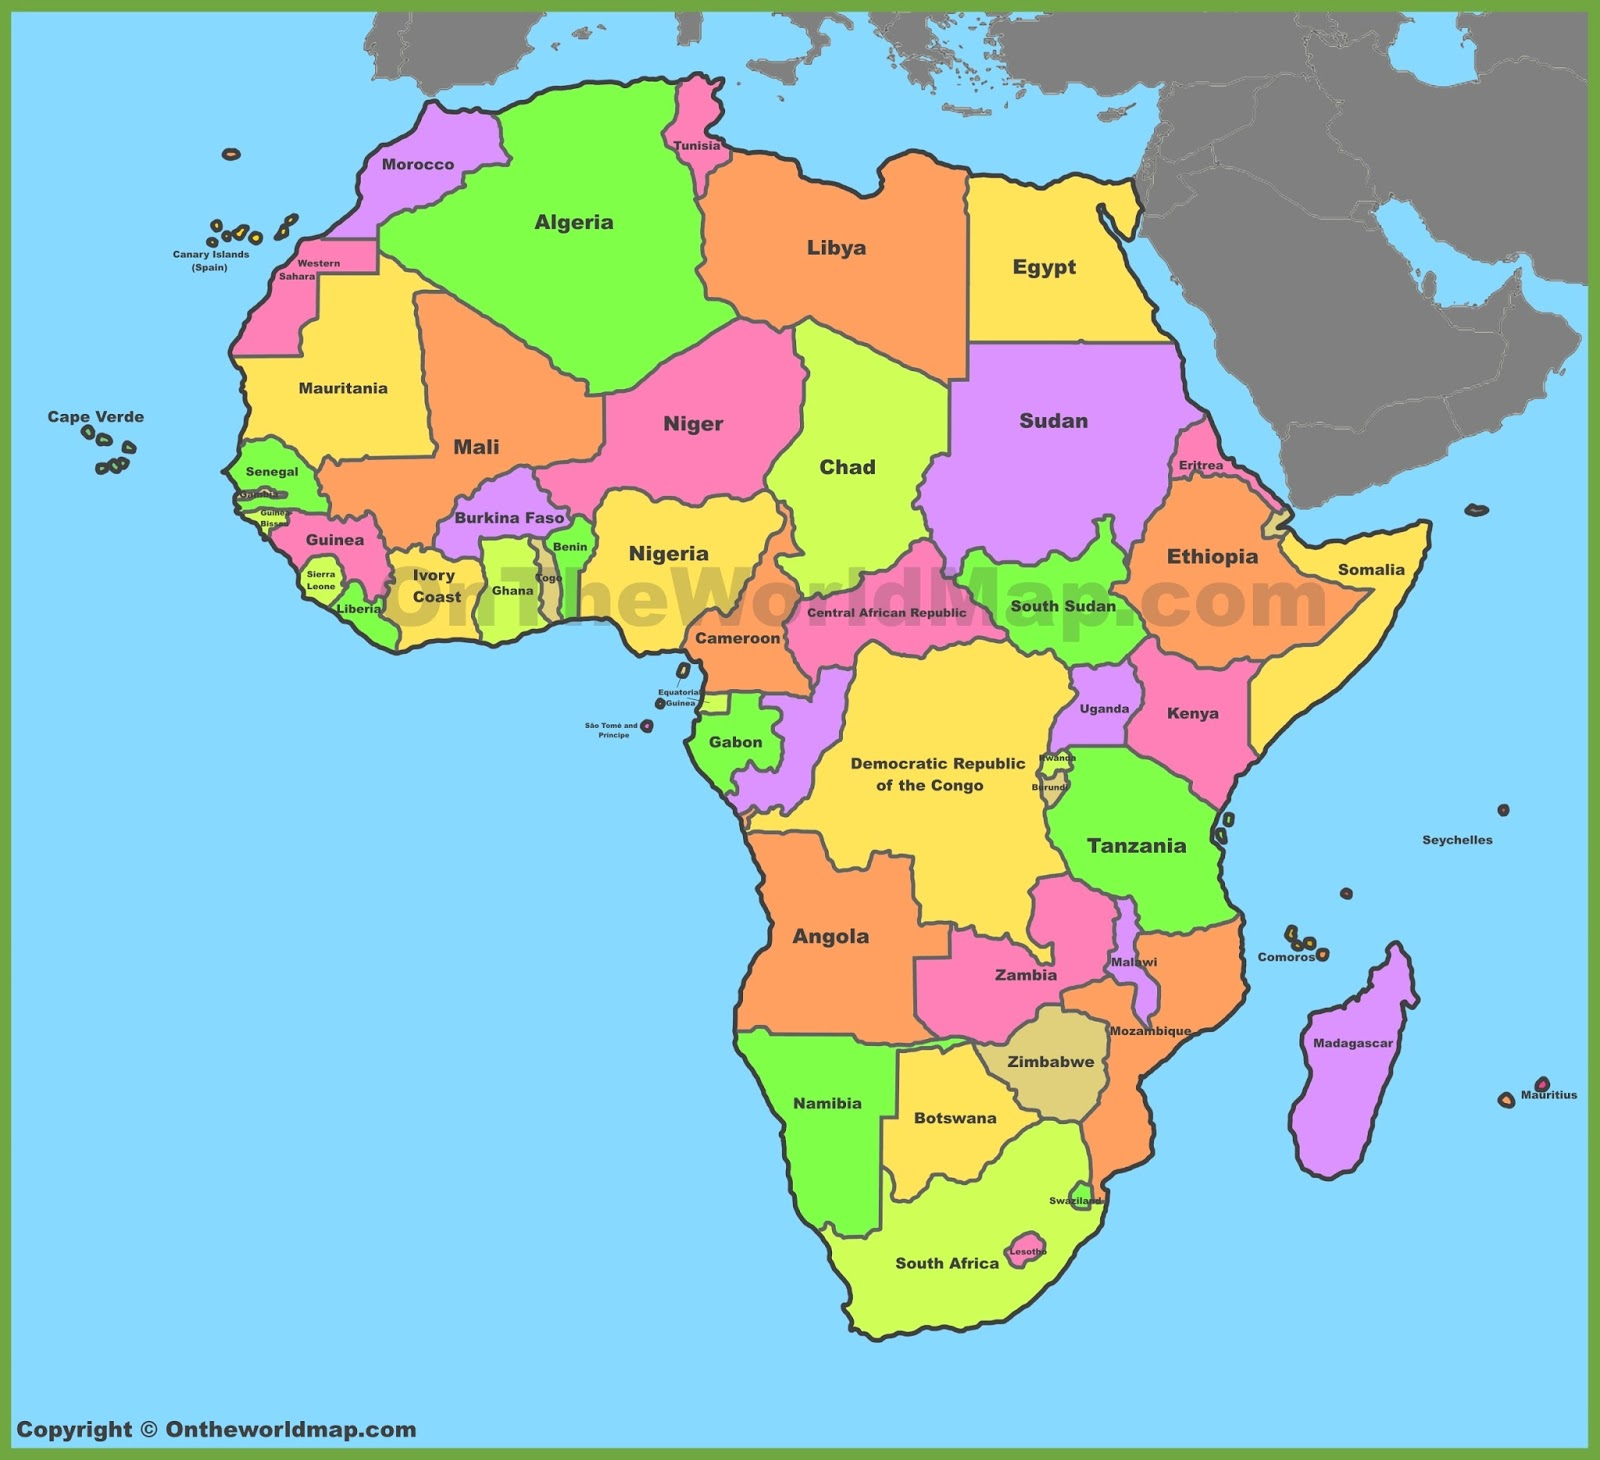 Social science africa political map africa political map gumiabroncs Gallery